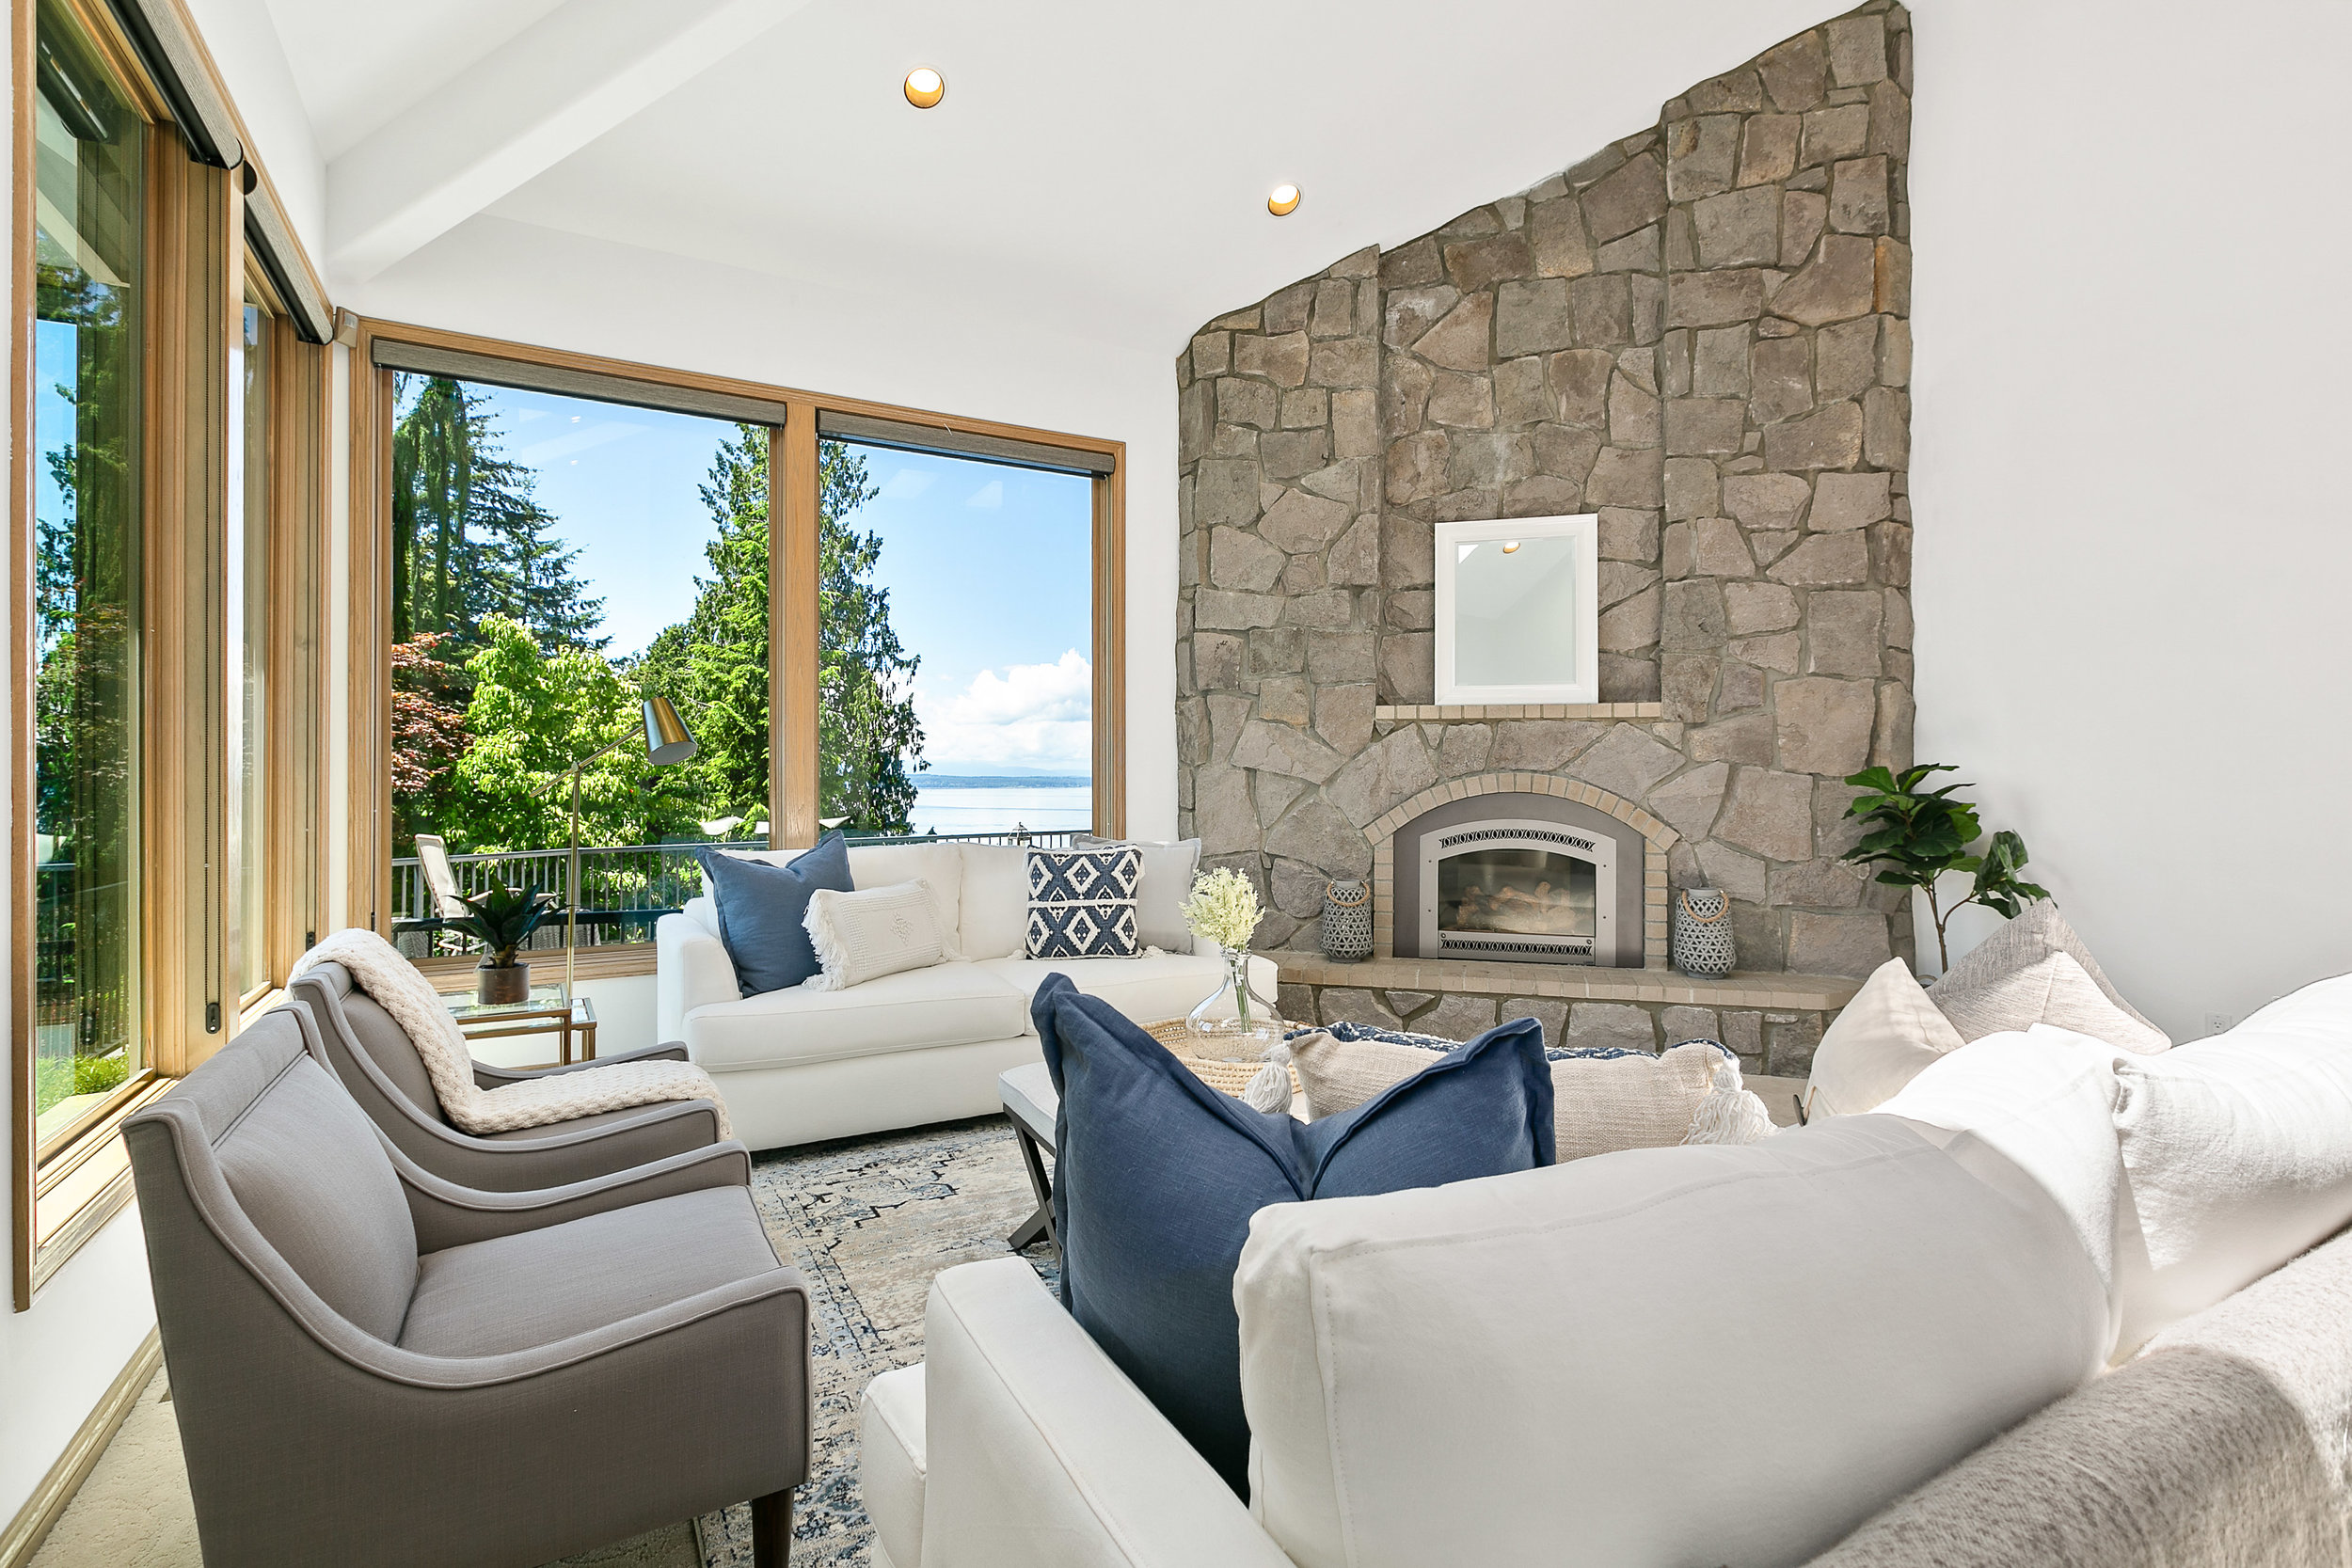 emerald hills interior design- Edmonds